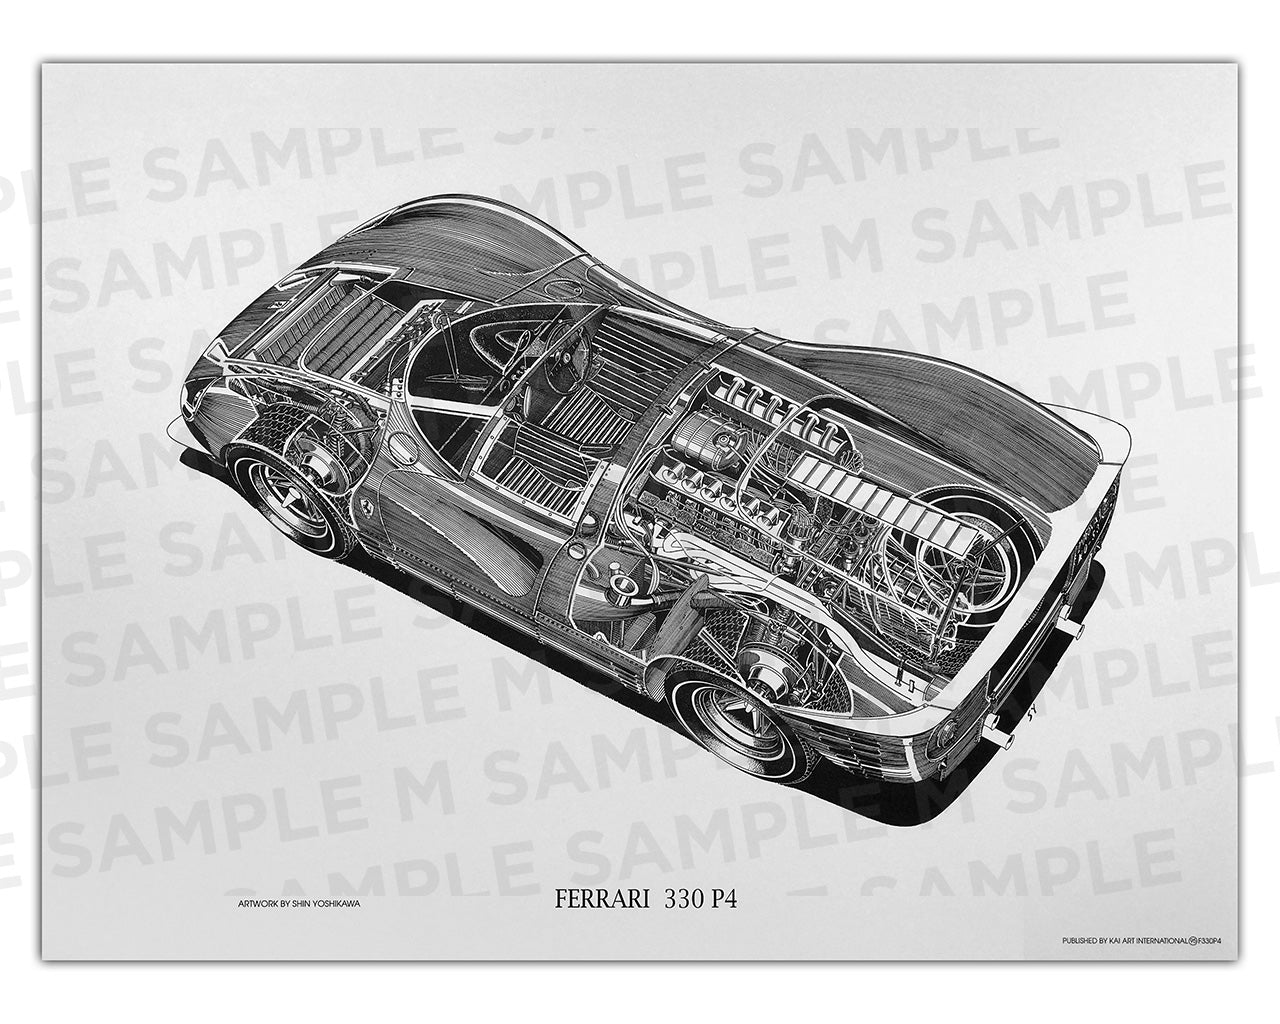 Authentic Ferrari 330P4 cutaway drawing print by renowned automotive artist Shin Yoshikawa